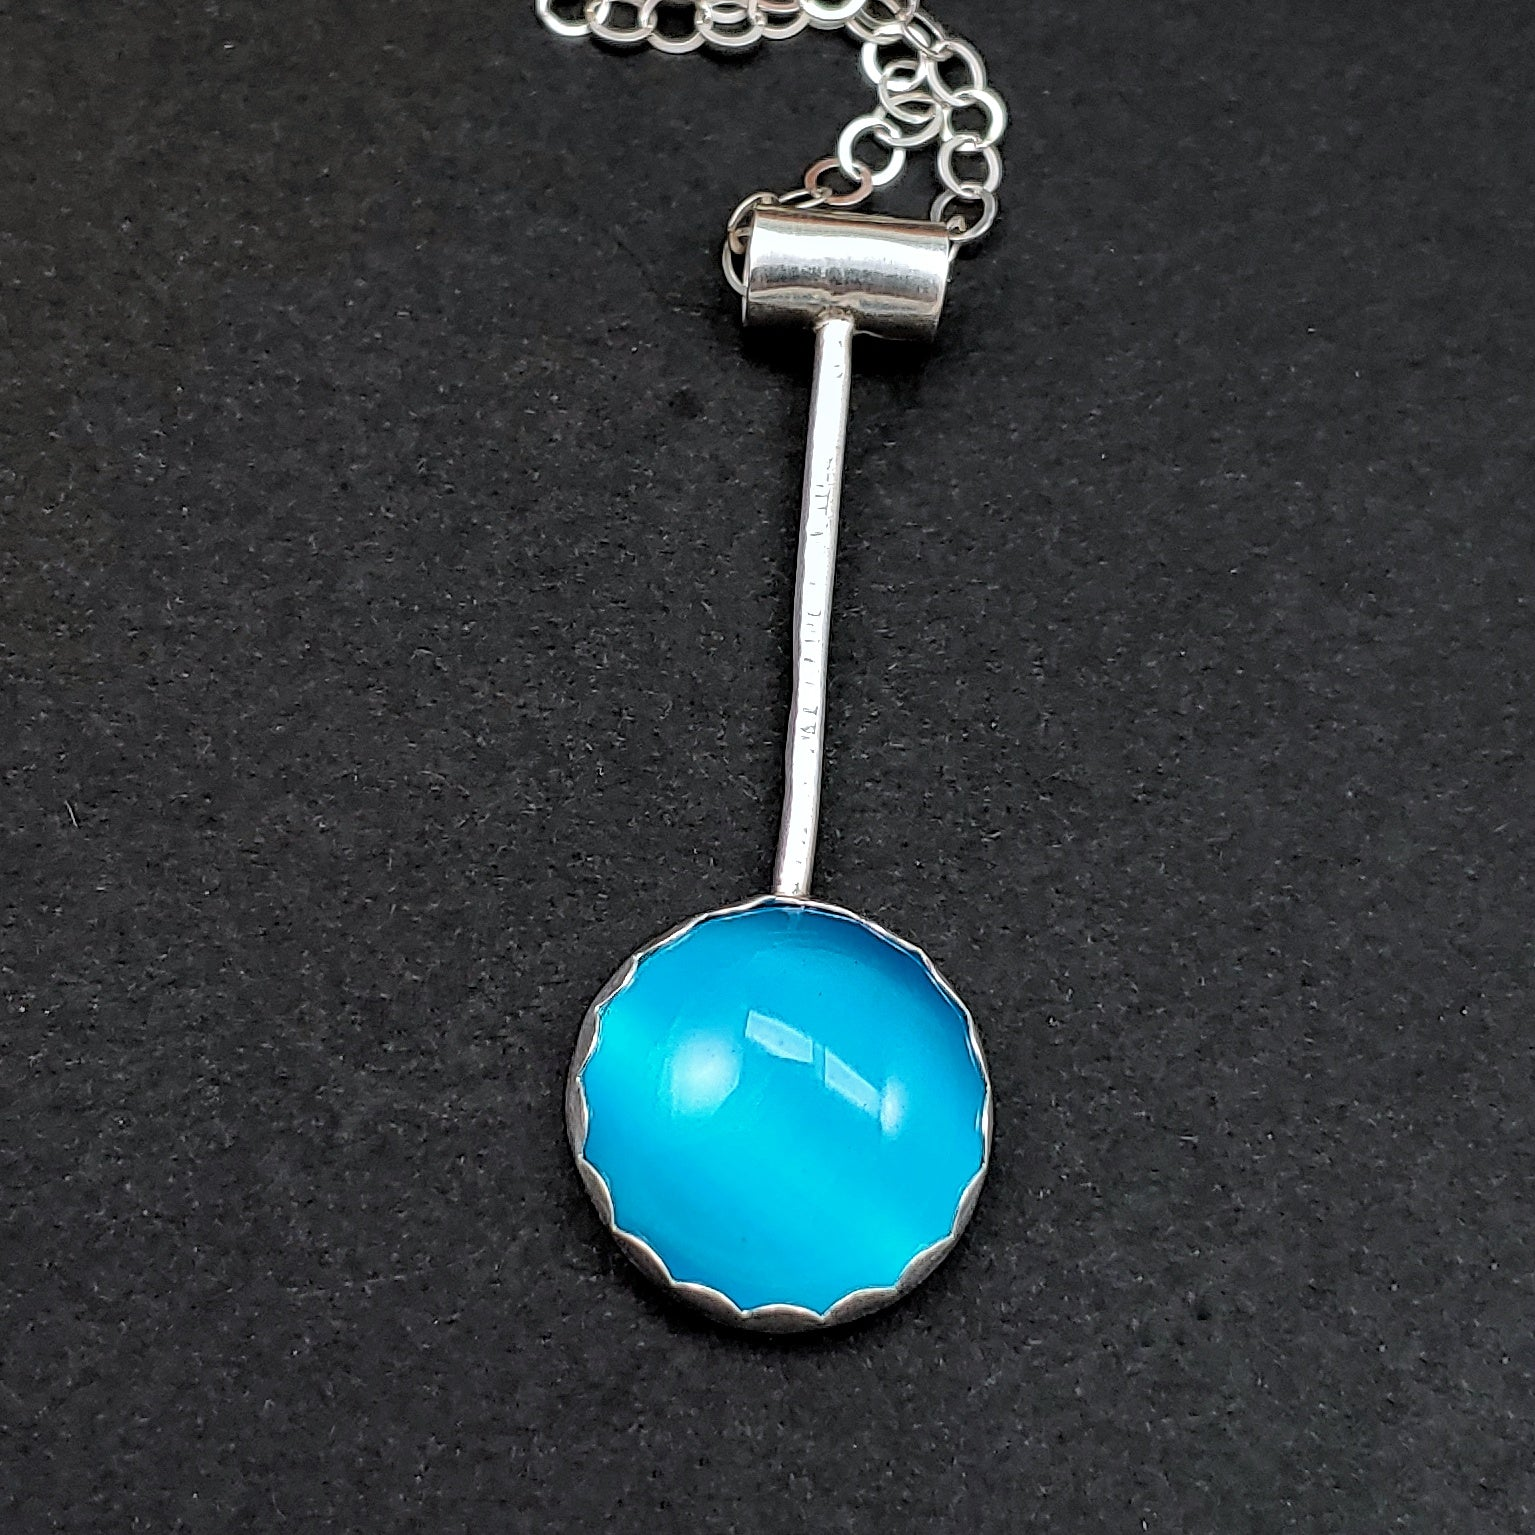 Minimalist Droplets Necklace with Aqua Cat's Eye